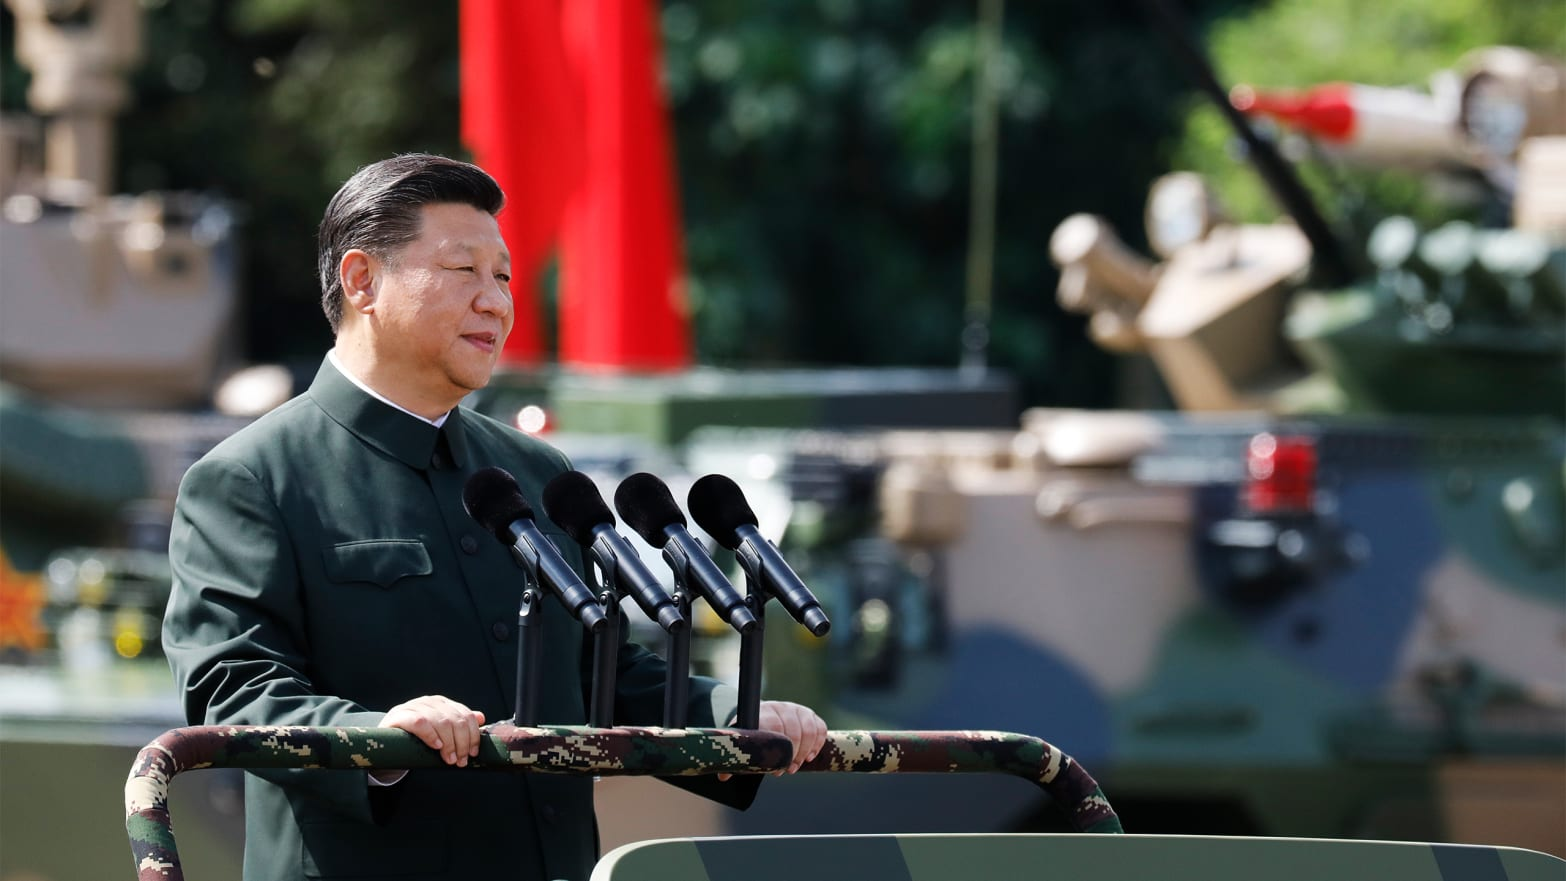 In Hong Kong After Mass Protests, Desperate Xi Jinping Needs a Win